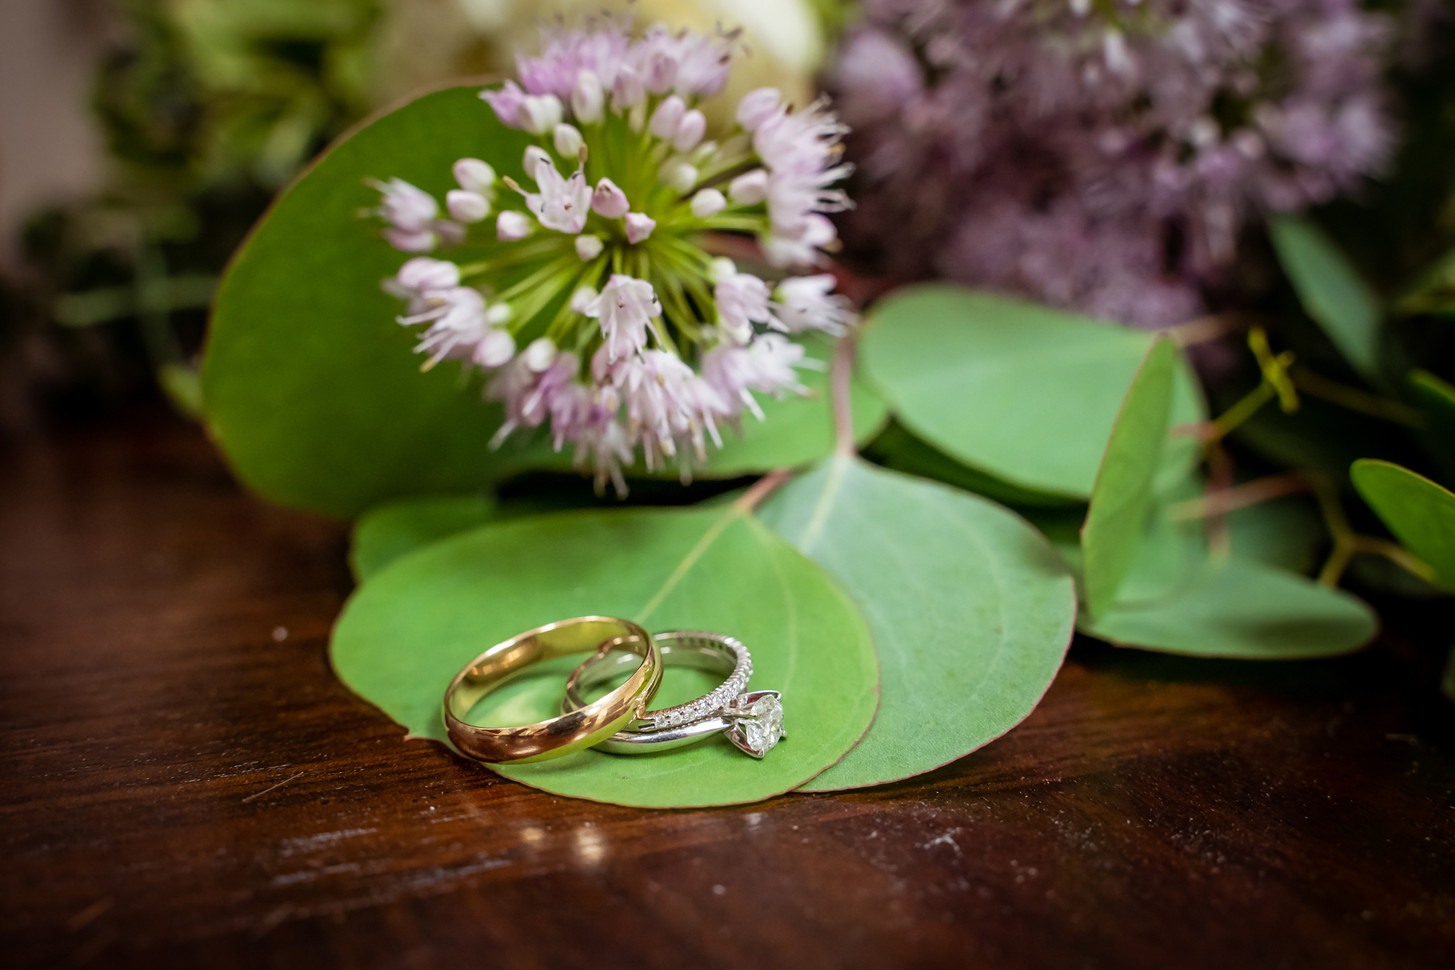 Wedding-Ring-Closeup.jpg